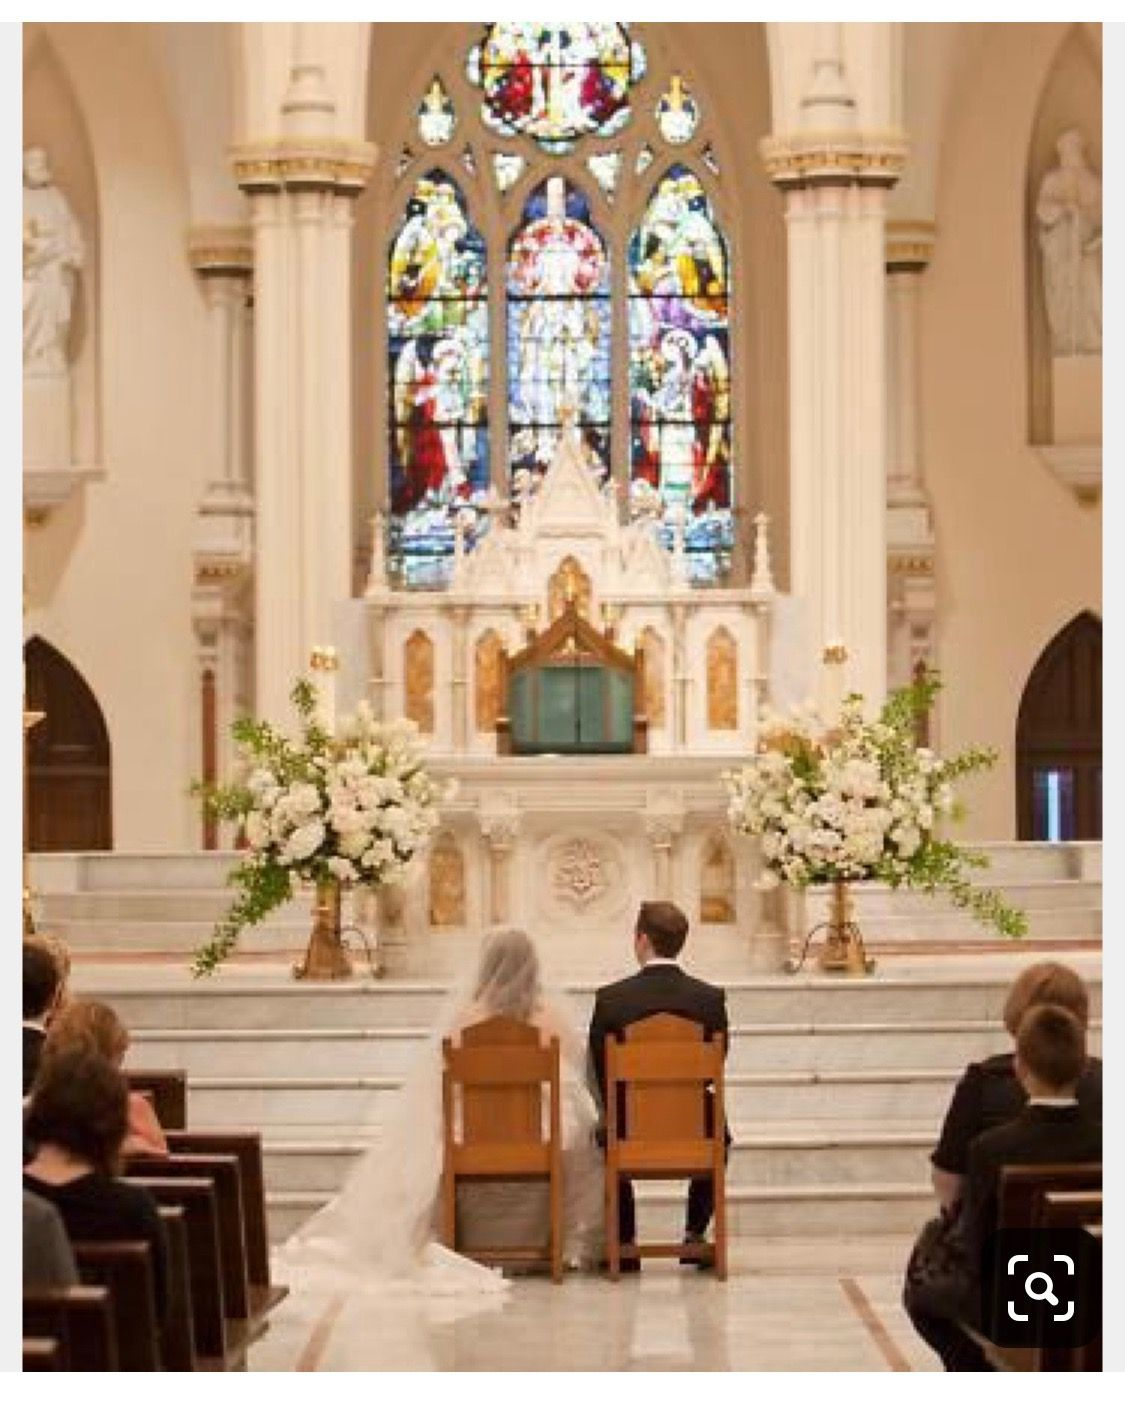 Pin By Katie Blessing On Wedding Flowers Wedding Church Decor Church Wedding Decorations Church Wedding Ceremony